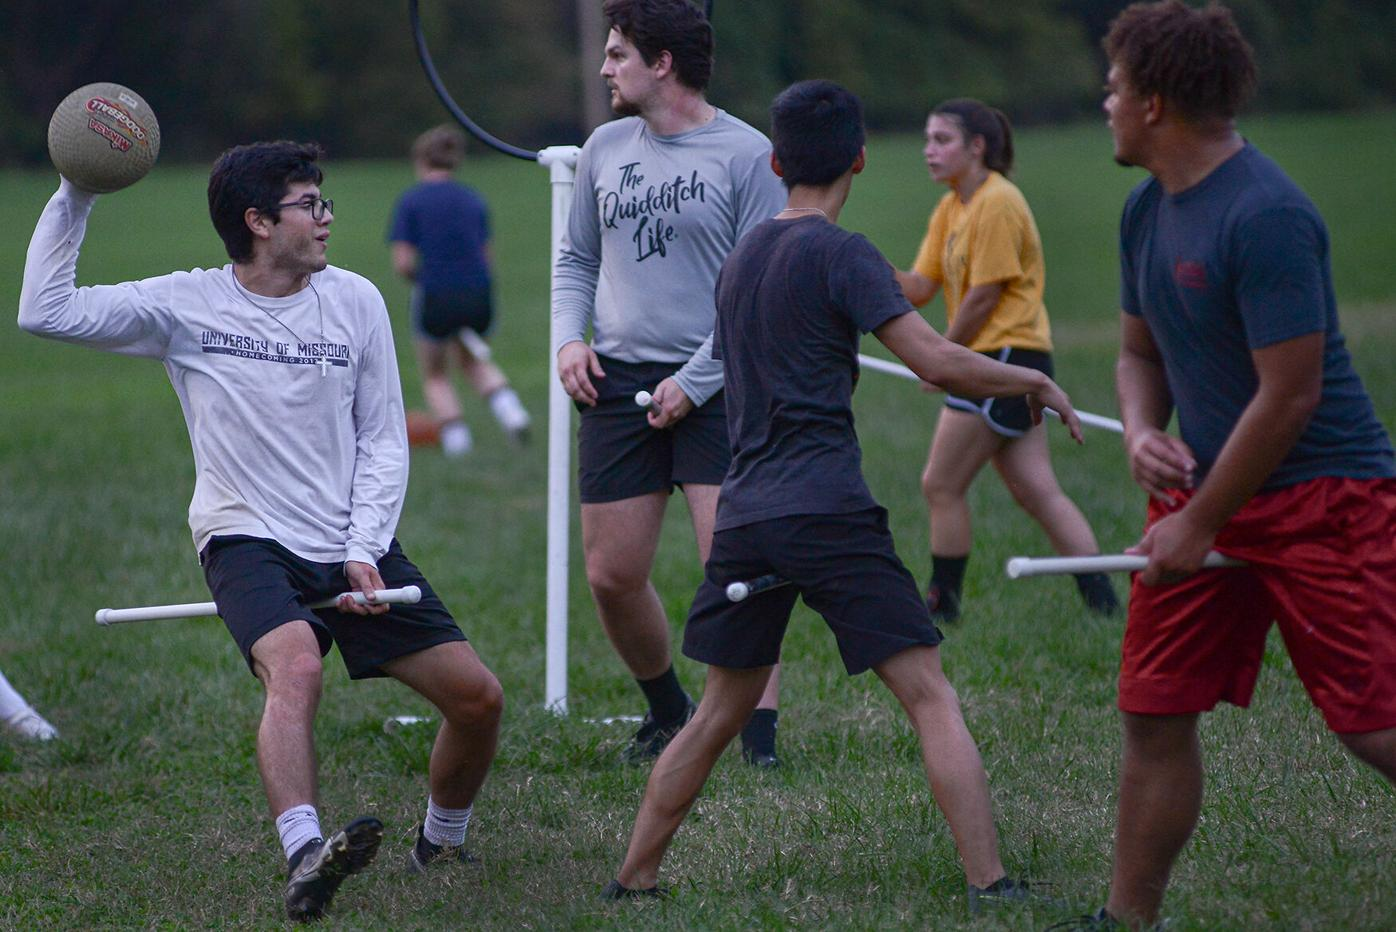 Vincent Reyes, the MU quidditch team captain, prepares to throw the ball during practice